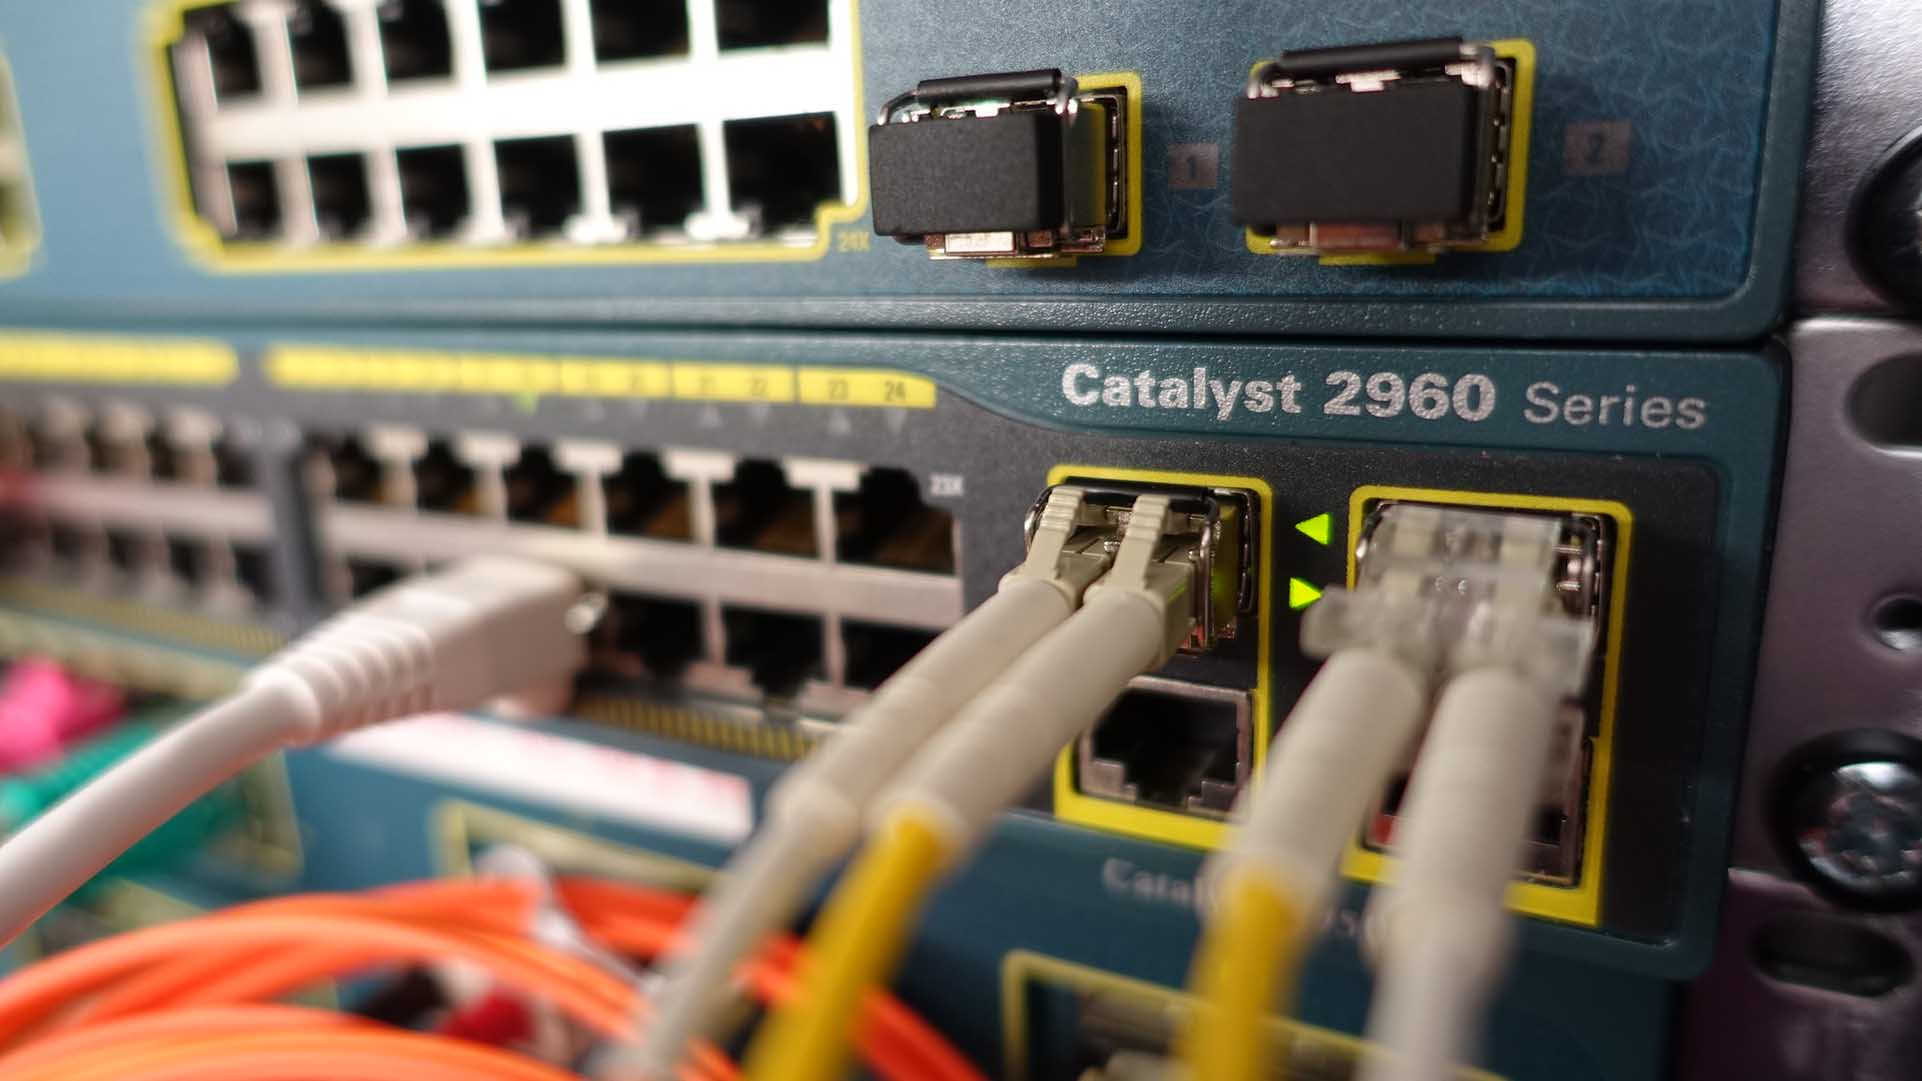 A Cisco Catalyst 2960 Series switch with cables plugged into it.